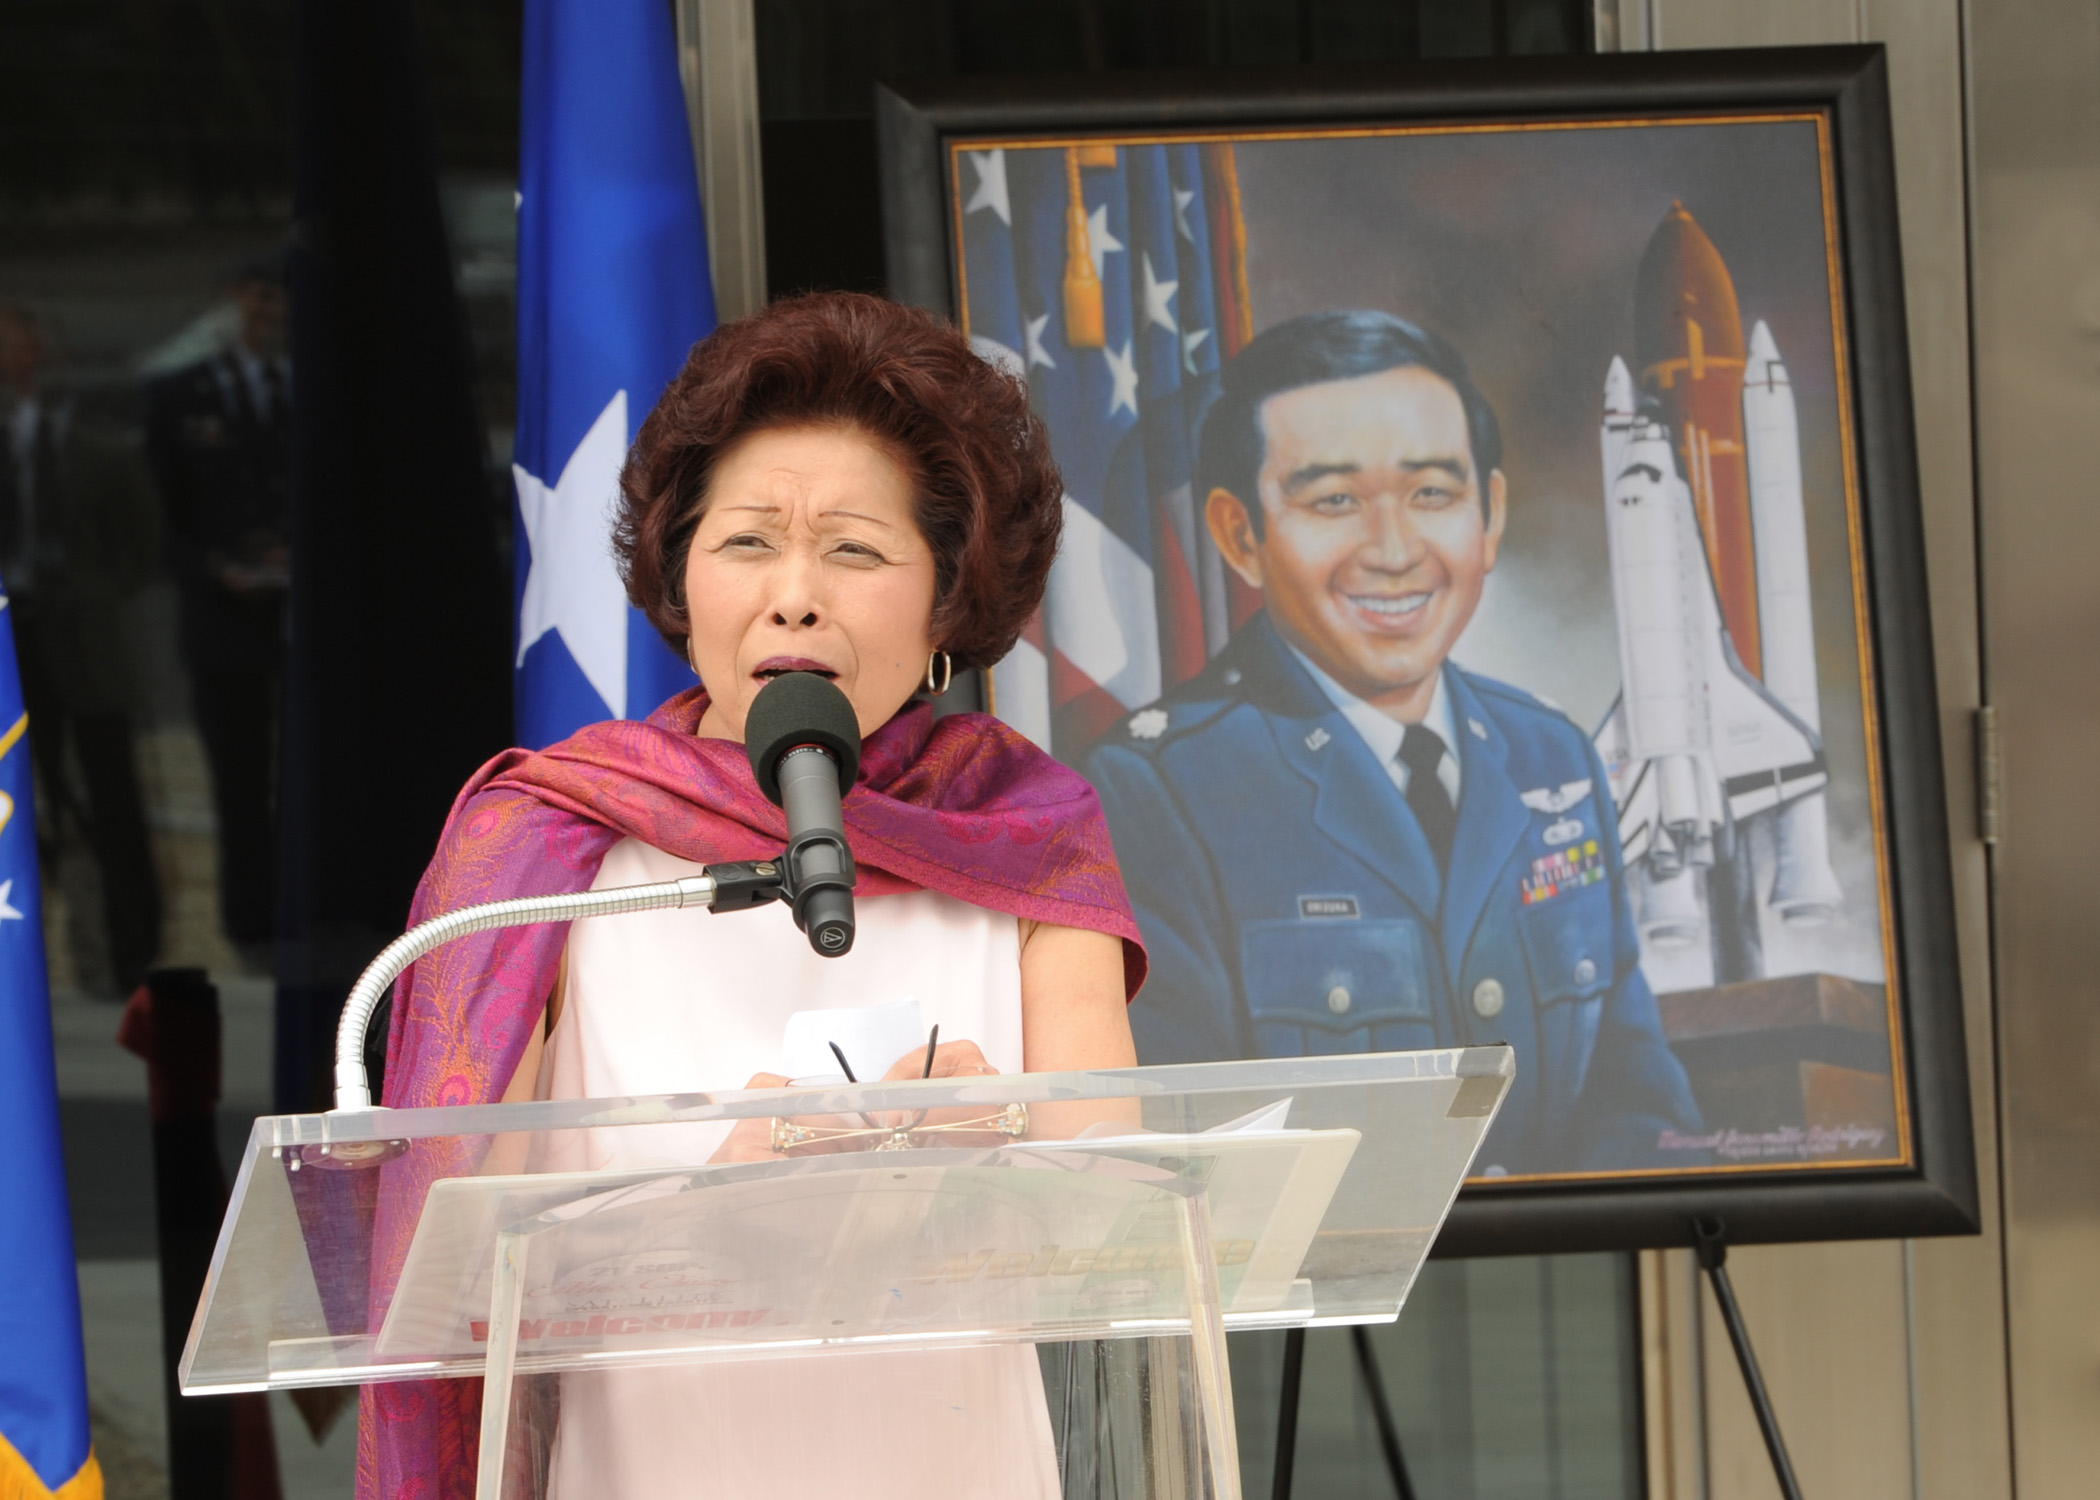 Lorna Onizuka, widow of Col. Ellison Onizuka, delivered a speech at the dedication of the Ellison Onizuka Satellite Operations Facility at Vandenberg Air Force Base in California in July 2010. (U.S. Air Force Photo/Senior Airman Bryan Boyette)